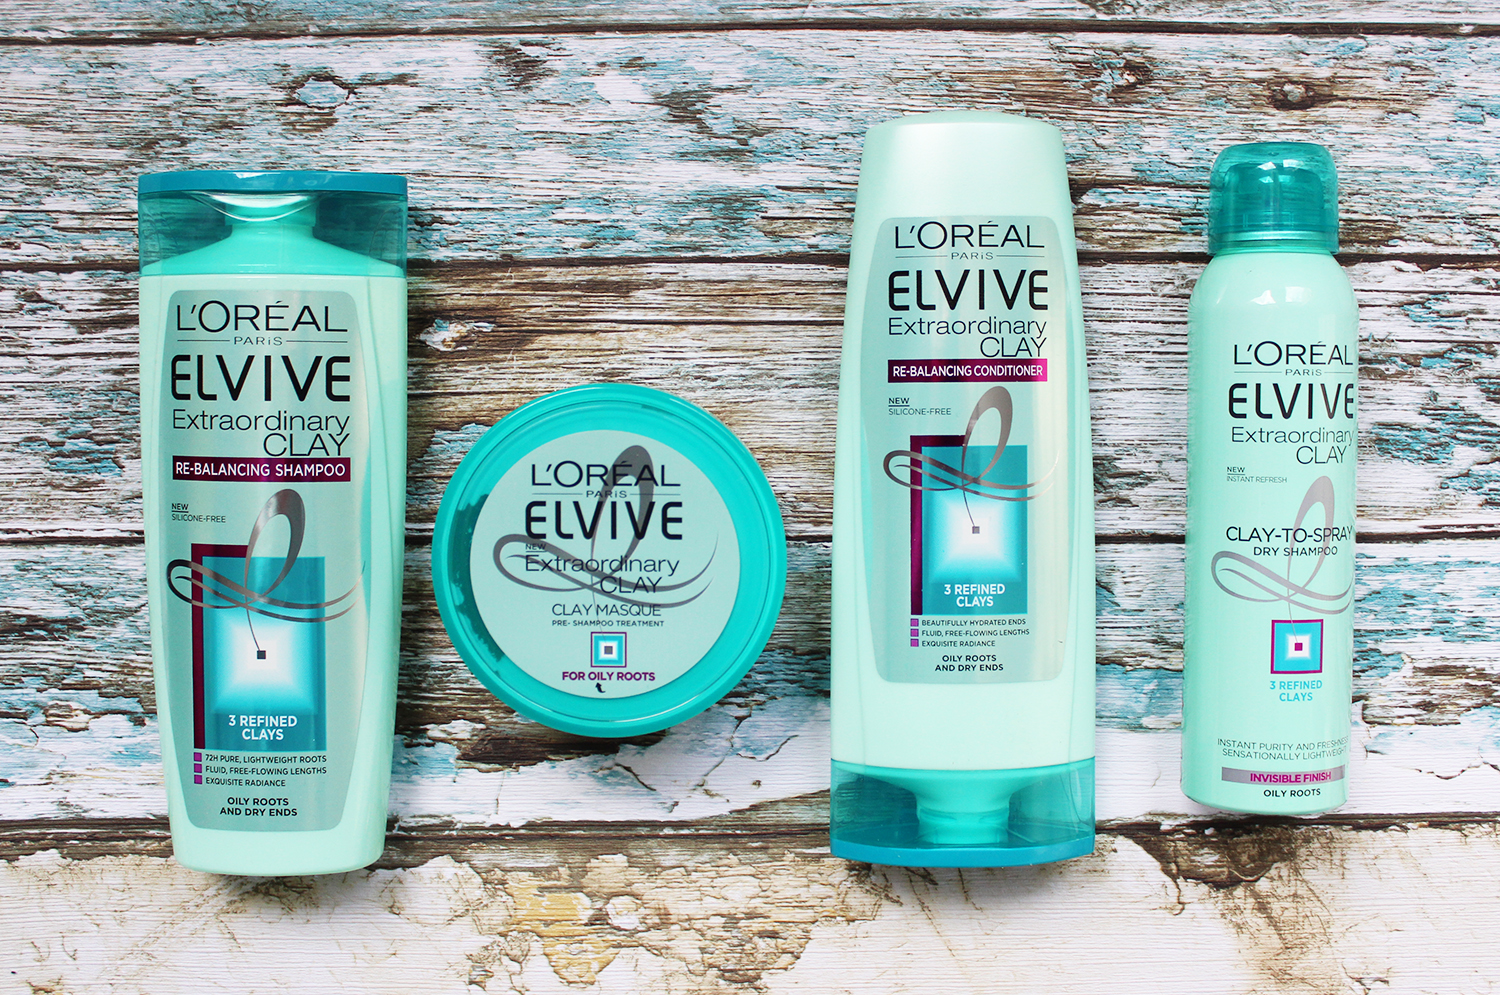 L'Oreal Elvive Extraordinary Clay Masque, Shampoo, Conditioner review